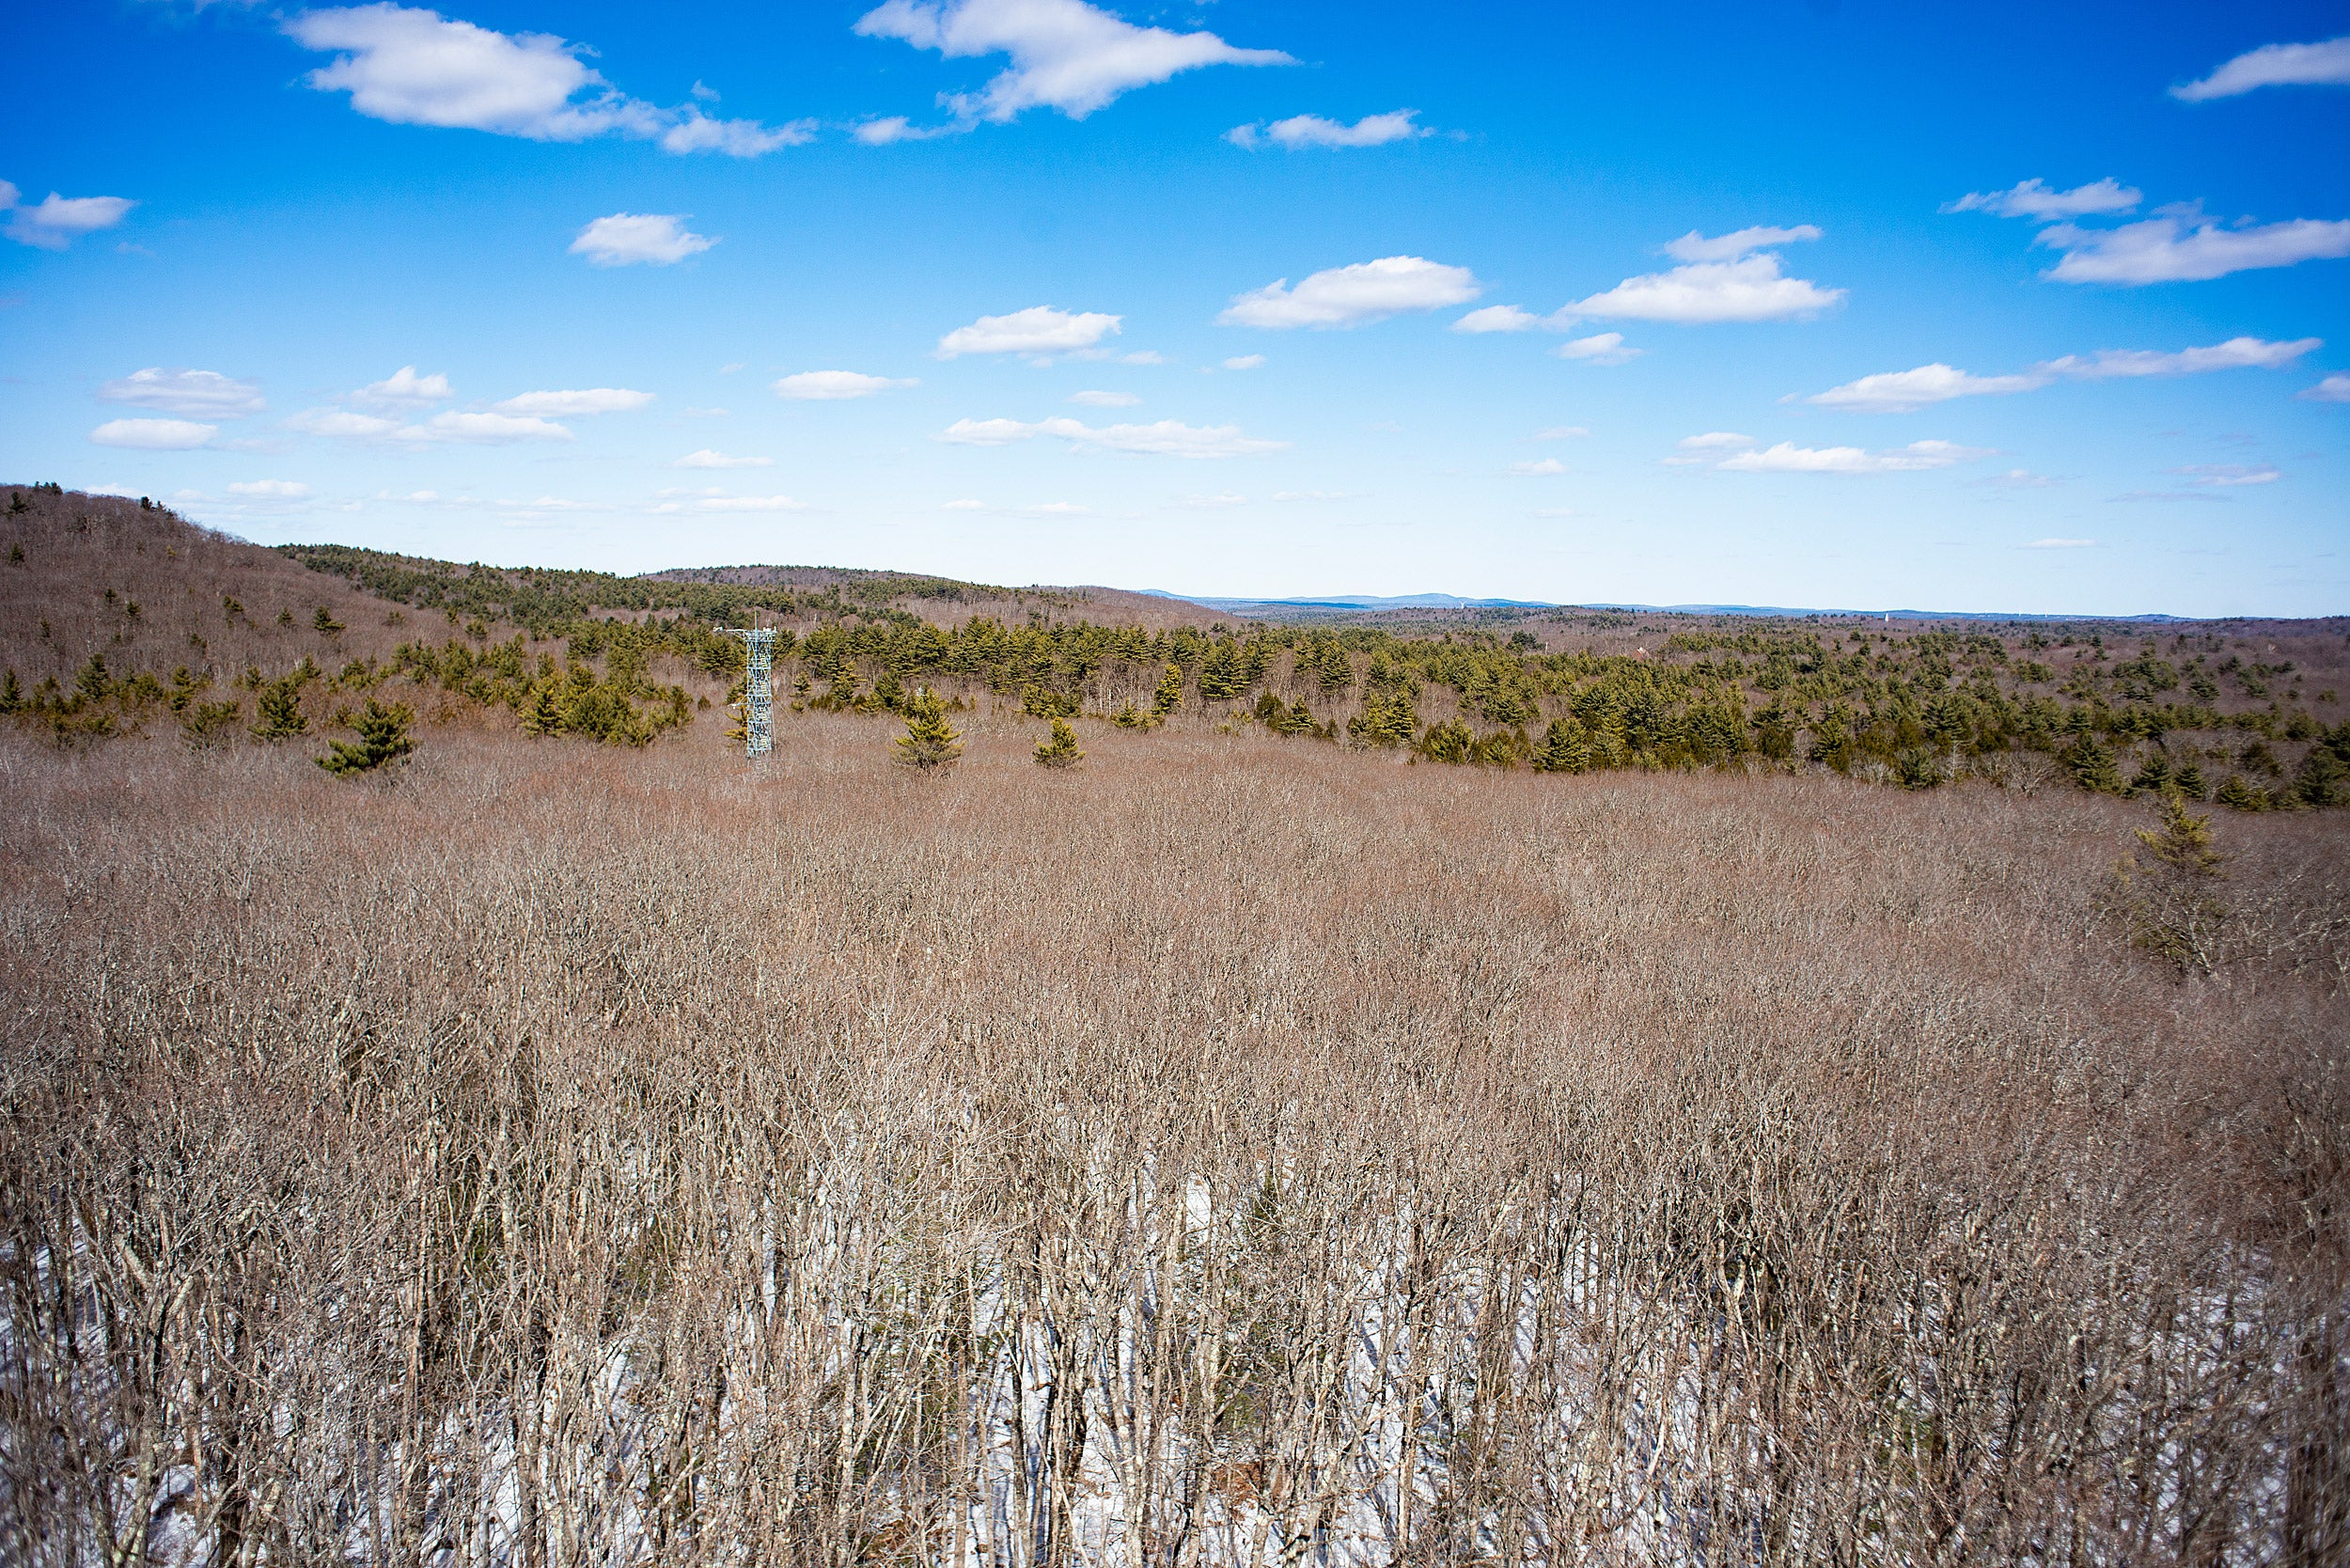 View from tower of Harvard Forest.